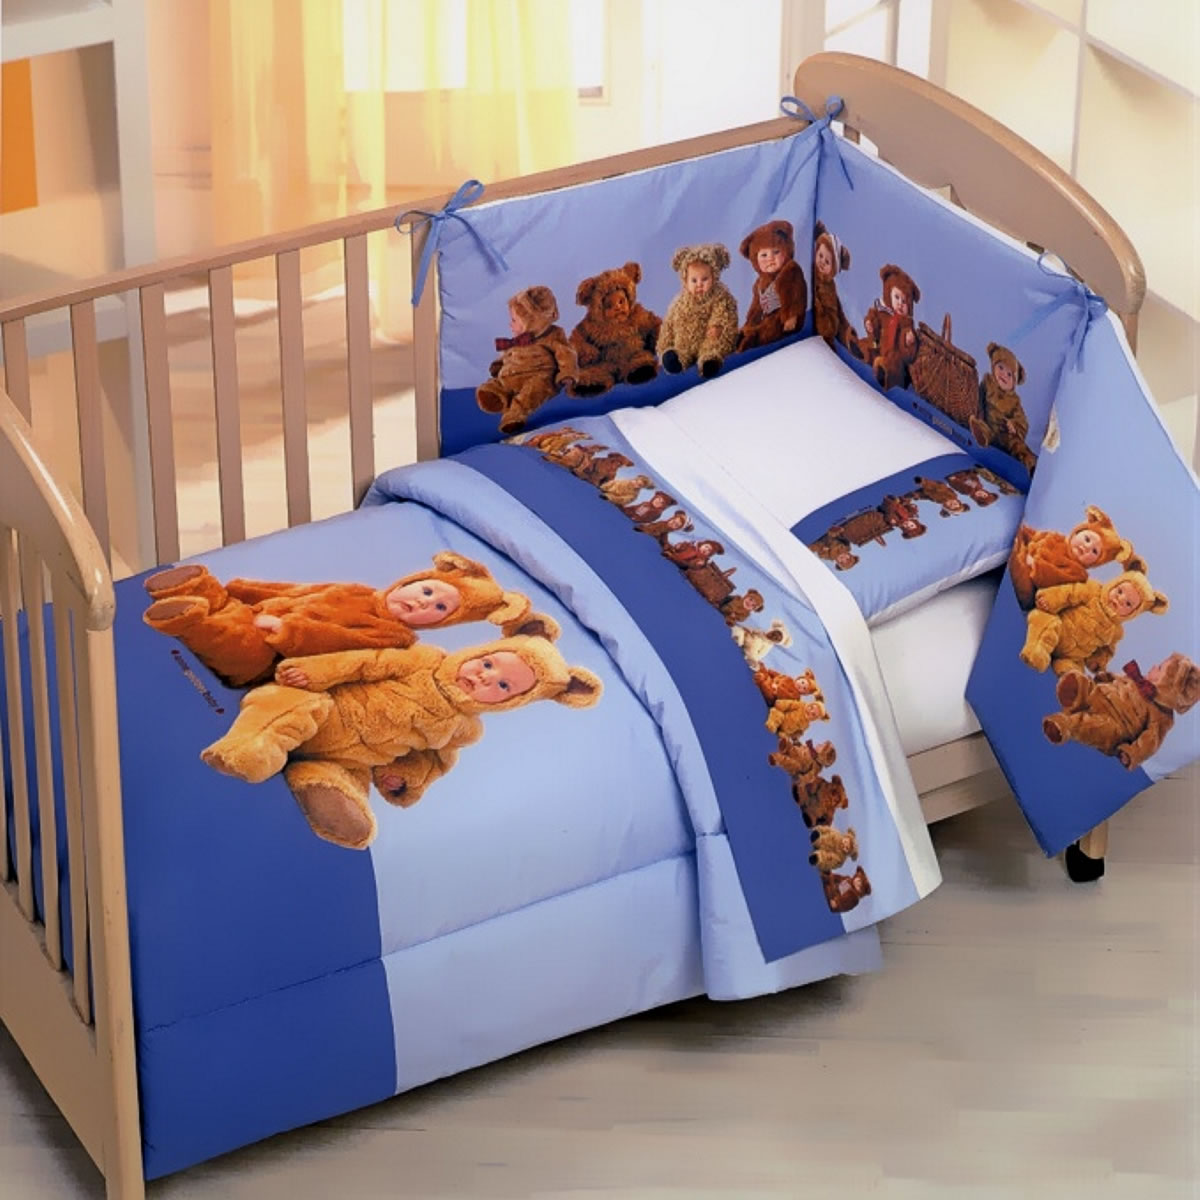 anne geddes 2 tlg kinderbettw sche 100x135 cm teddy bears picnic 2952. Black Bedroom Furniture Sets. Home Design Ideas